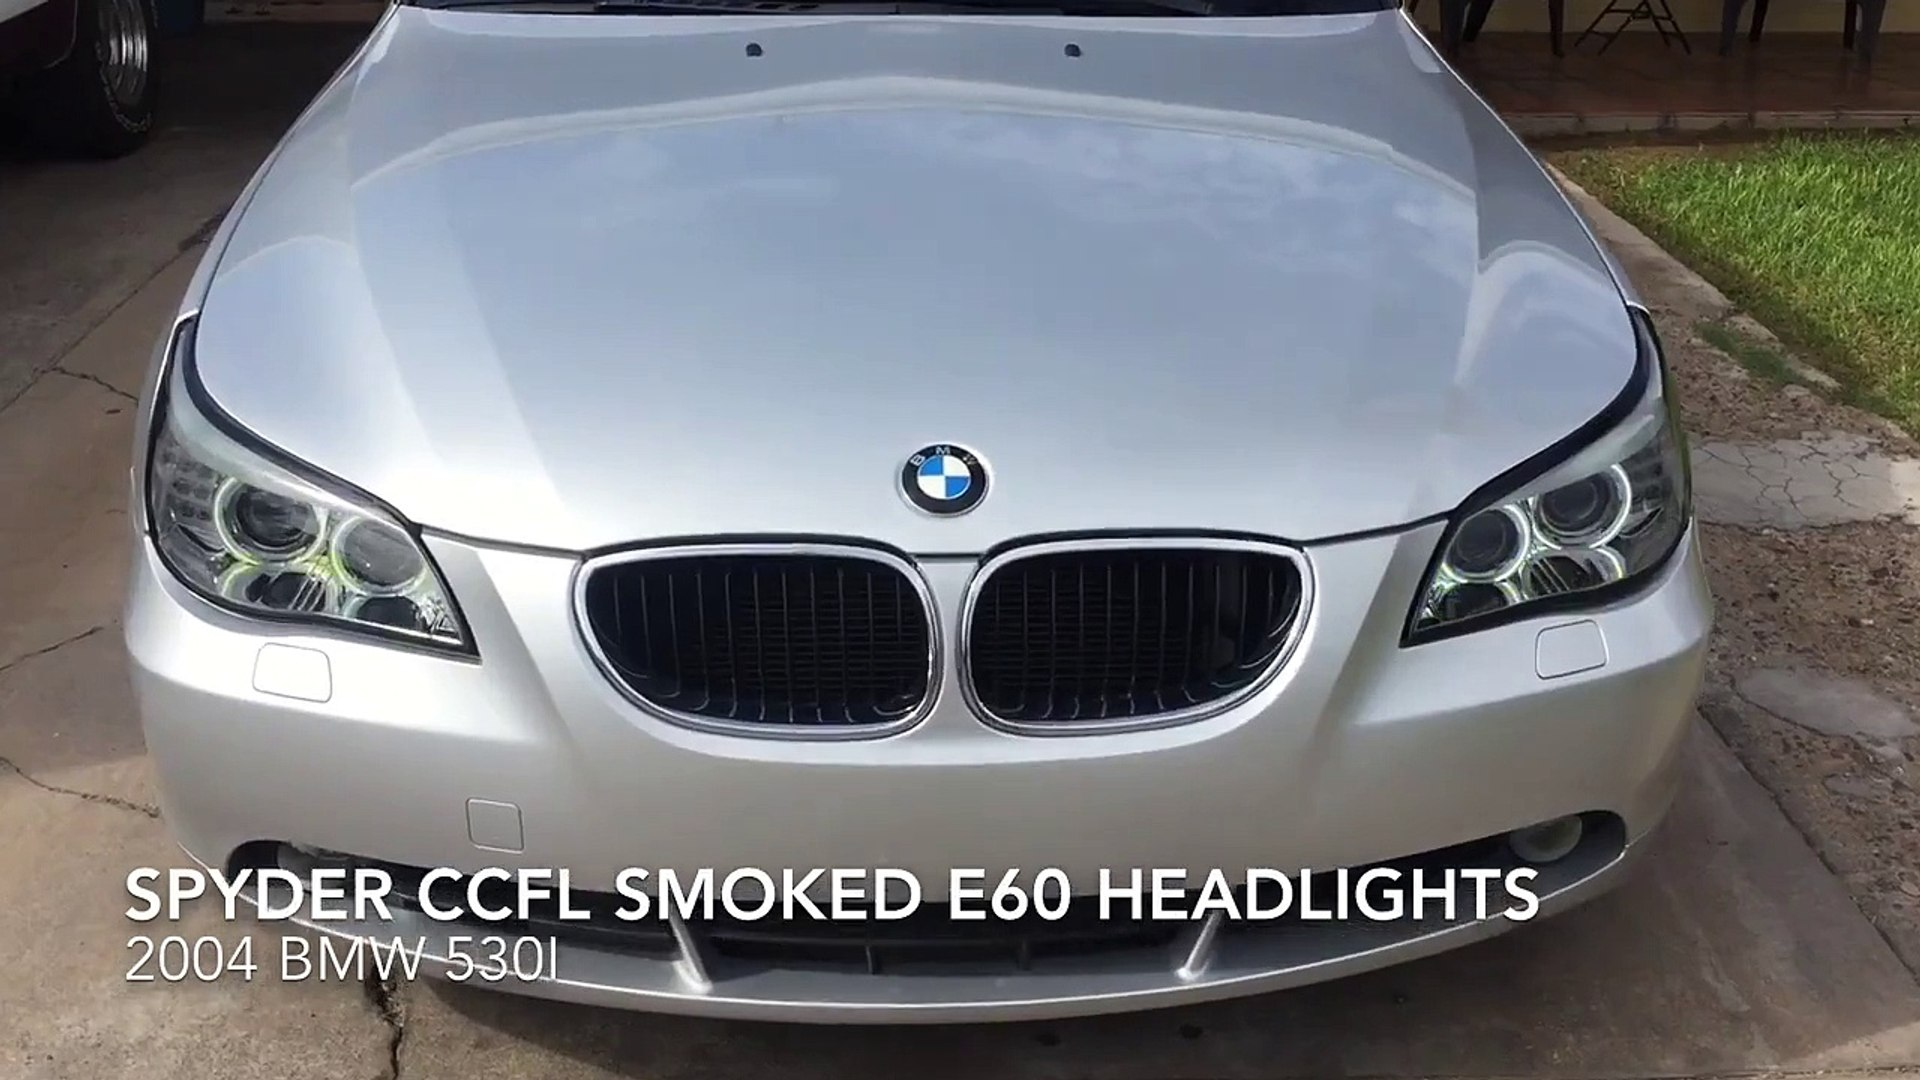 Bmw E60 Spyder Ccfl Halo Projector Headlights Review Video Dailymotion